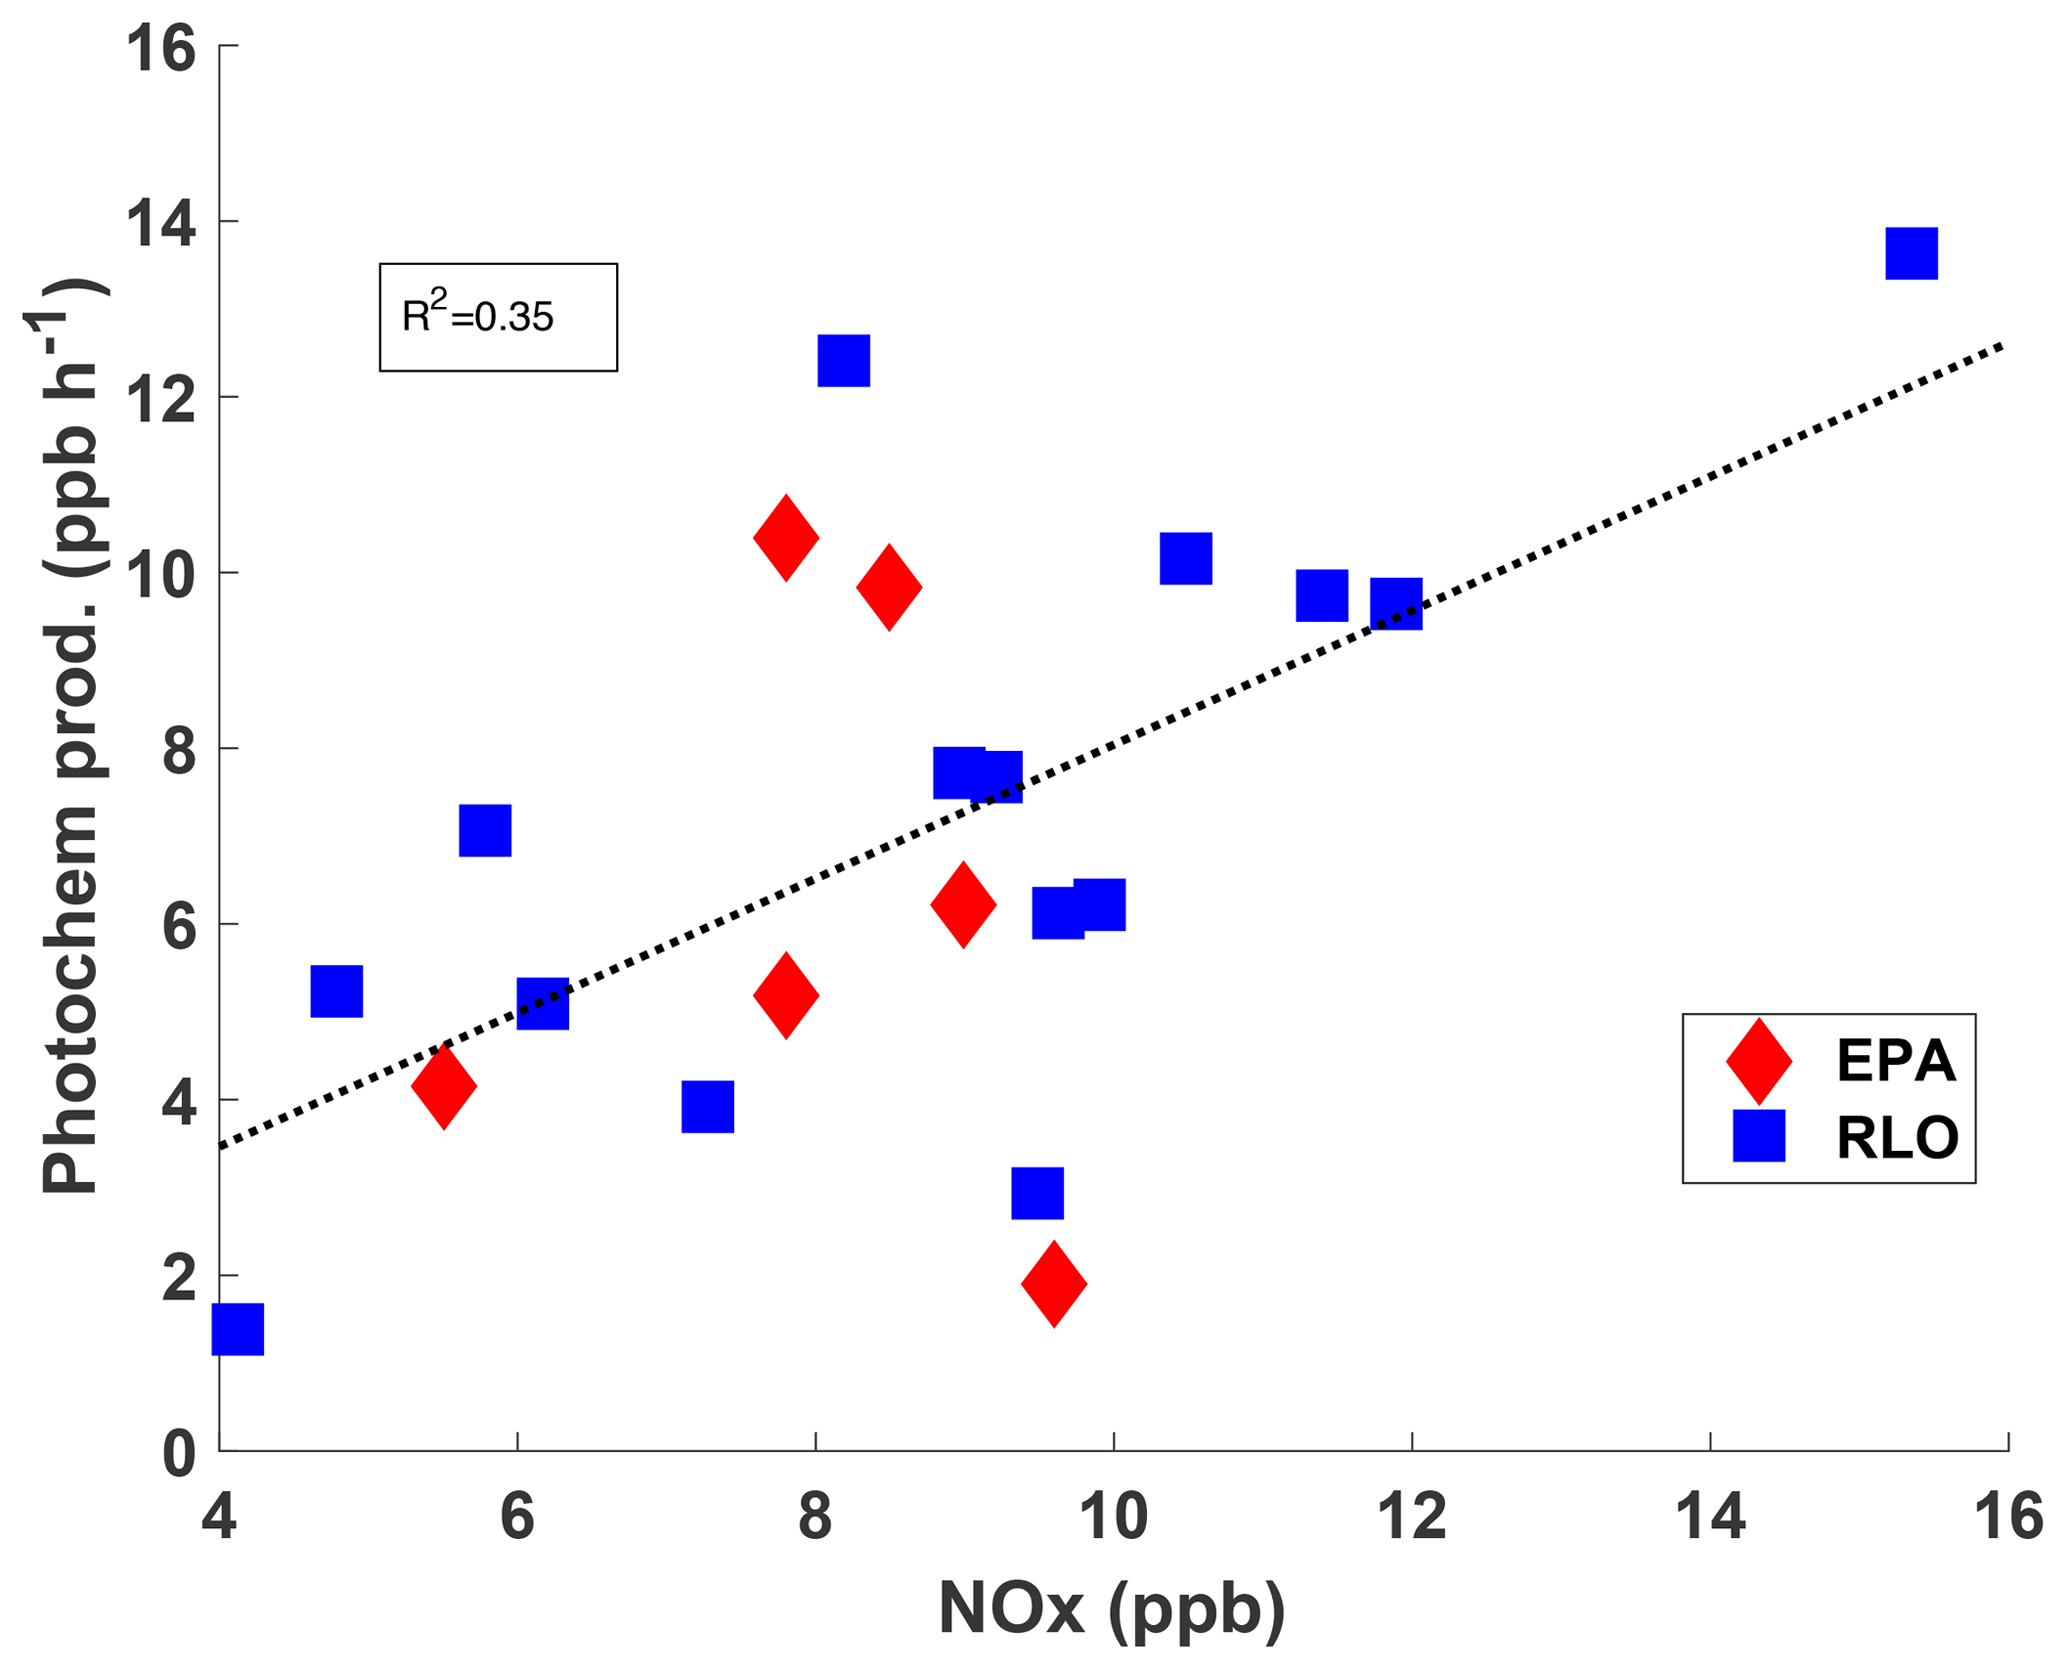 ACP - Photochemical production of ozone and emissions of NOx